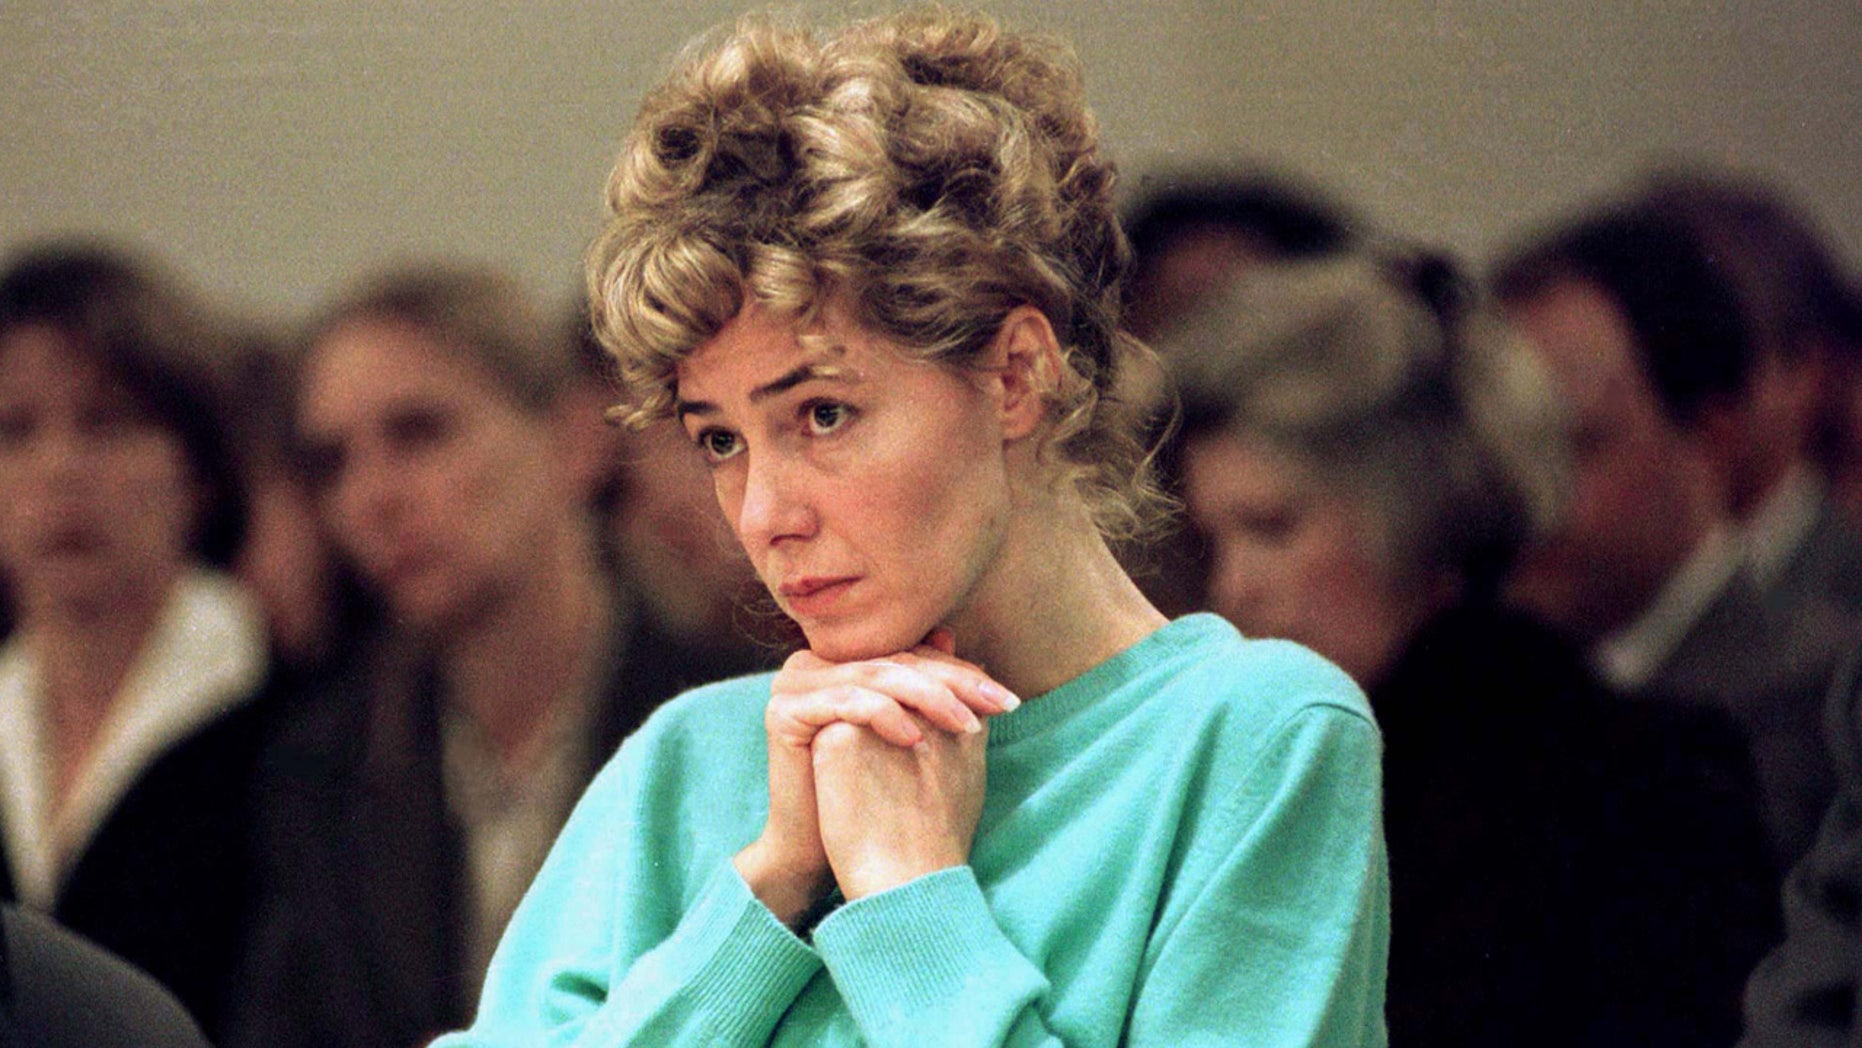 FILE PHOTO:  Mary Kay LeTourneau as seen in a court hearing in 1997